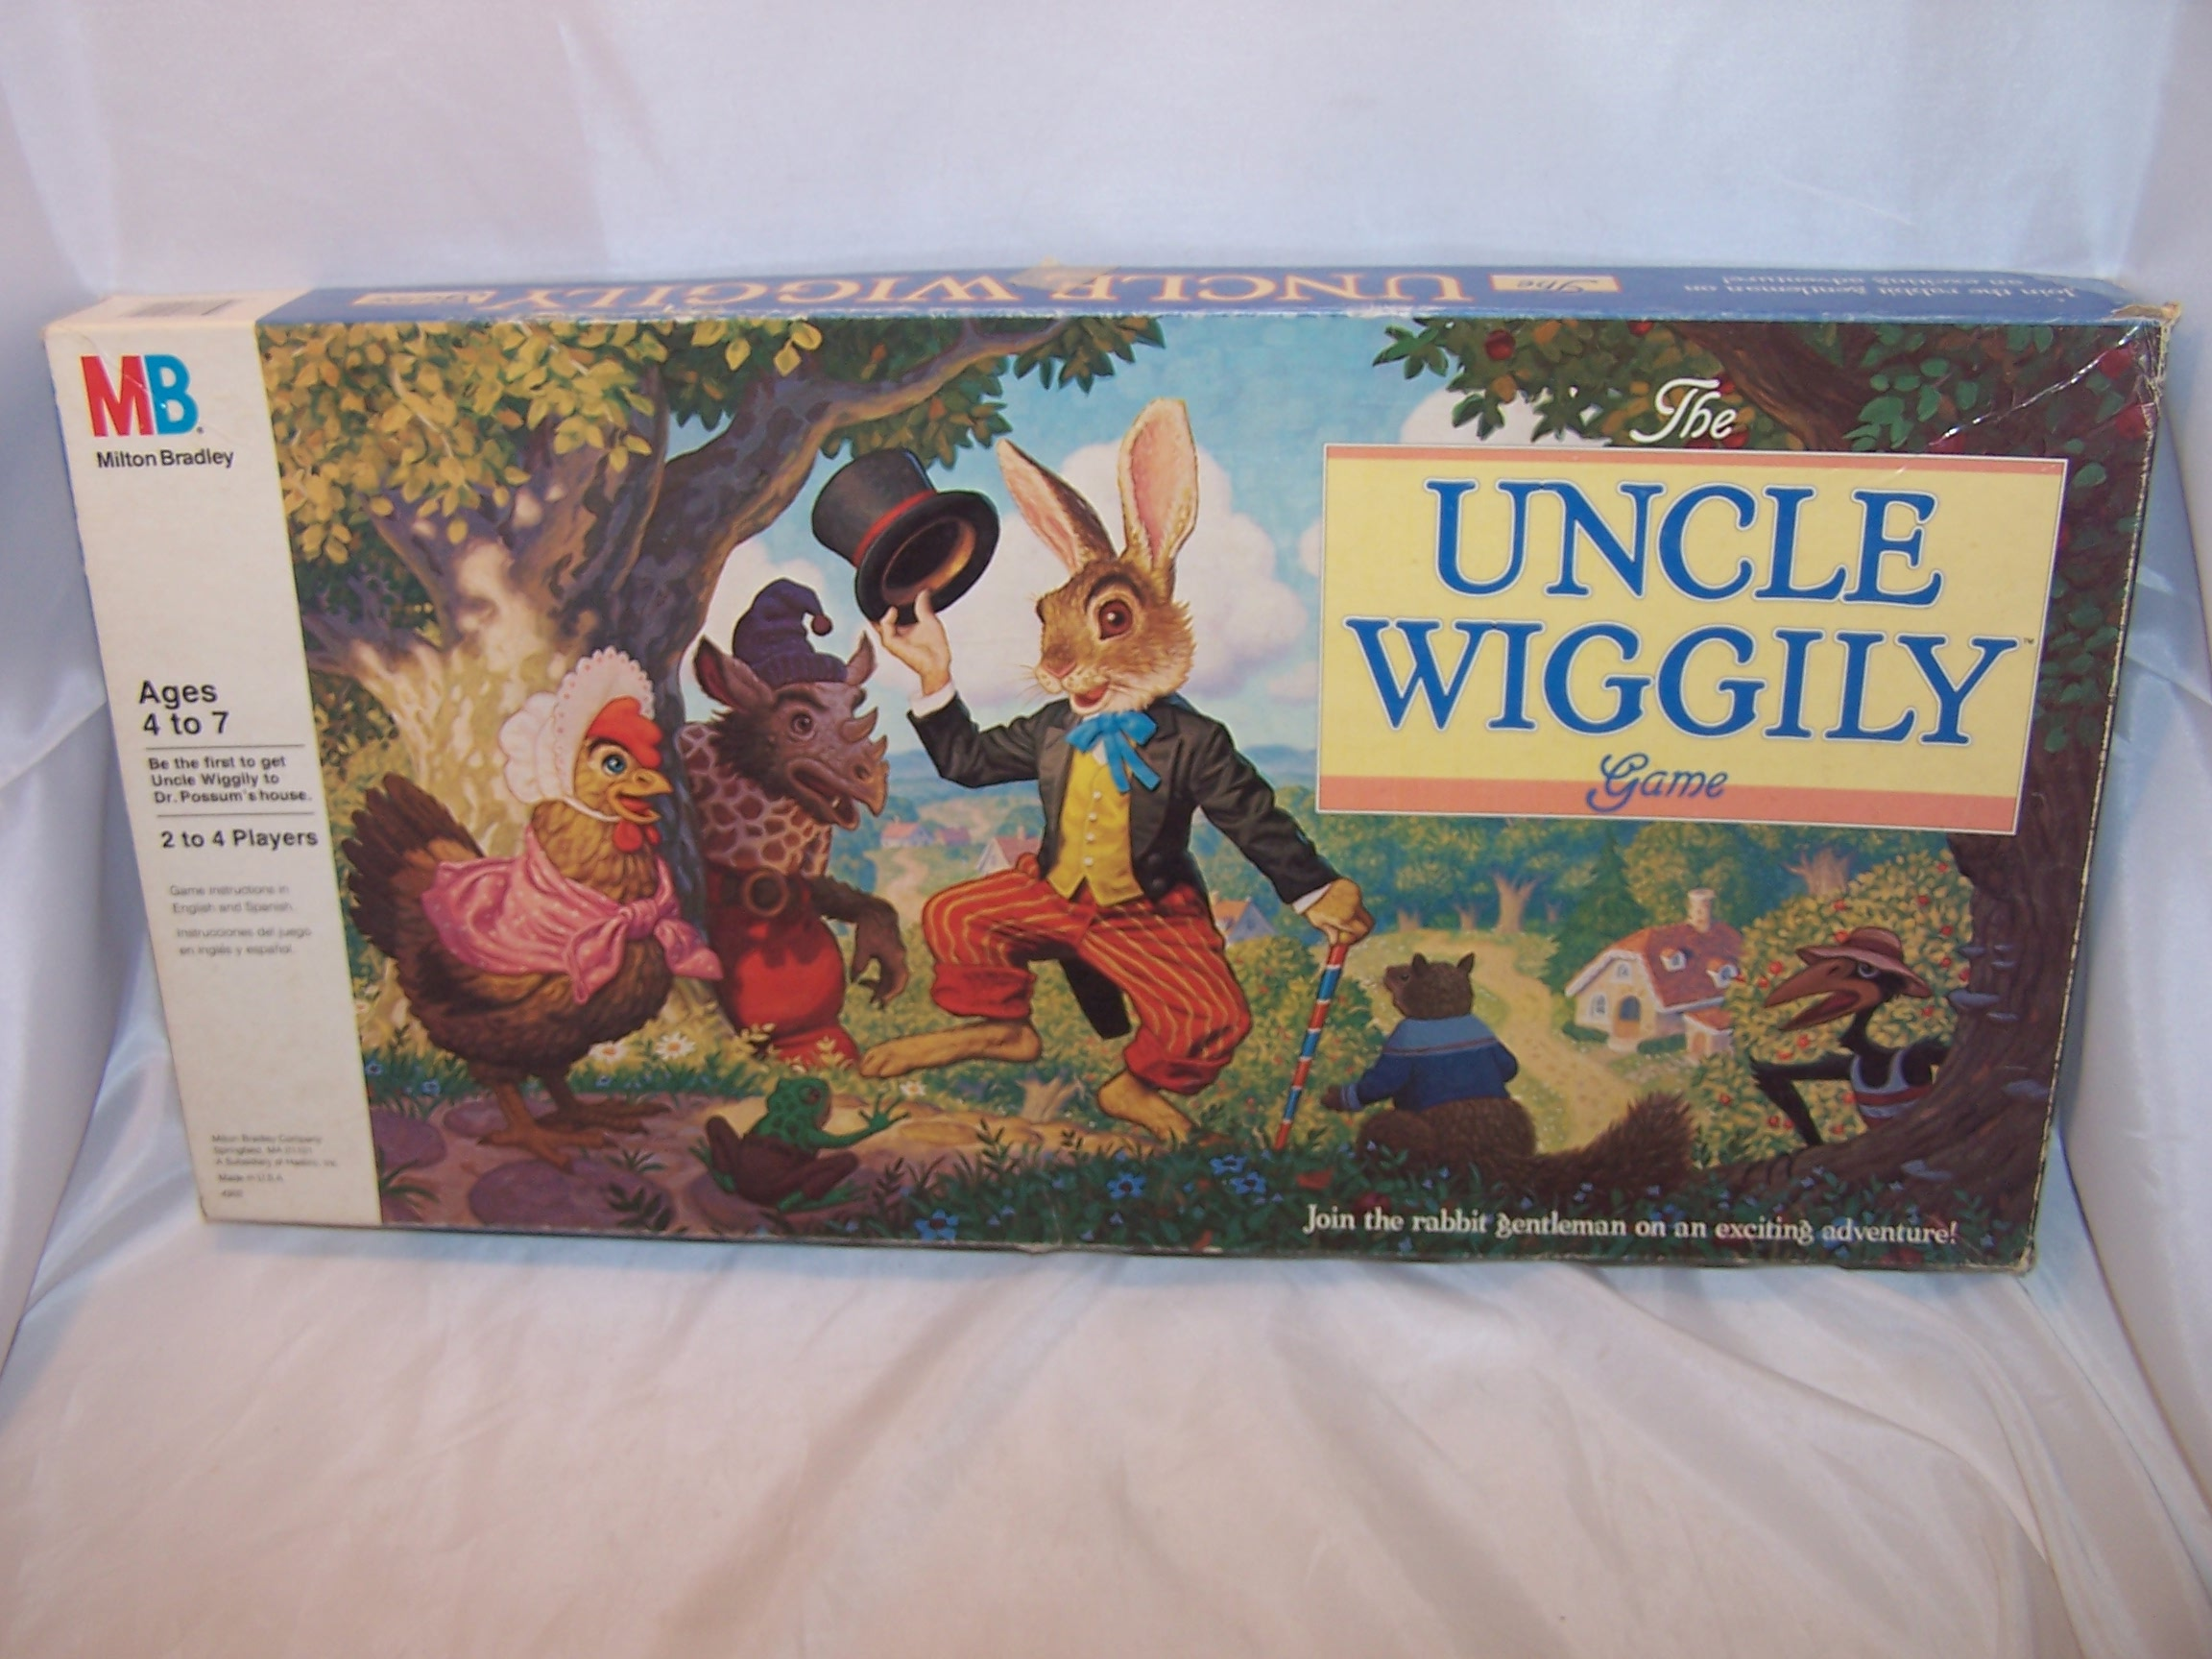 Uncle Wiggily Game, 1988, Milton Bradley